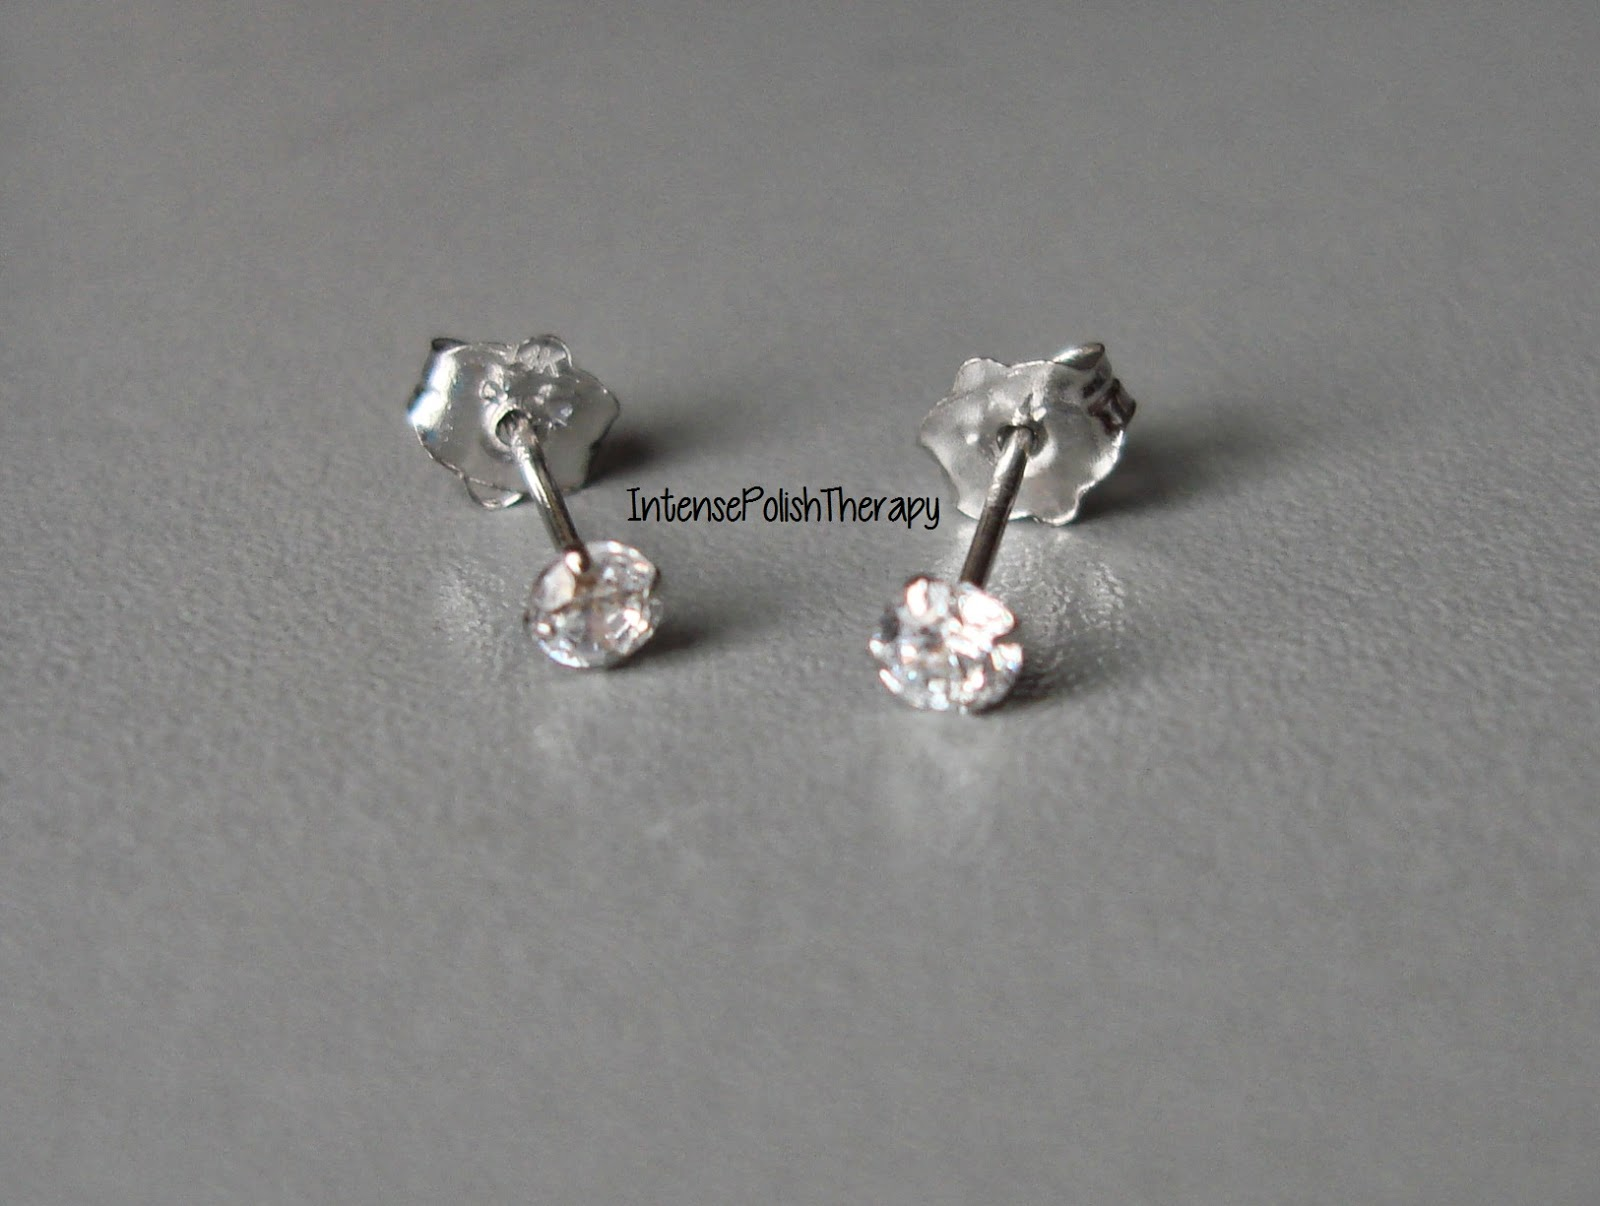 BLING 14KT. WHITE GOLD MARTINI STUD EARRING CLEAR CZ